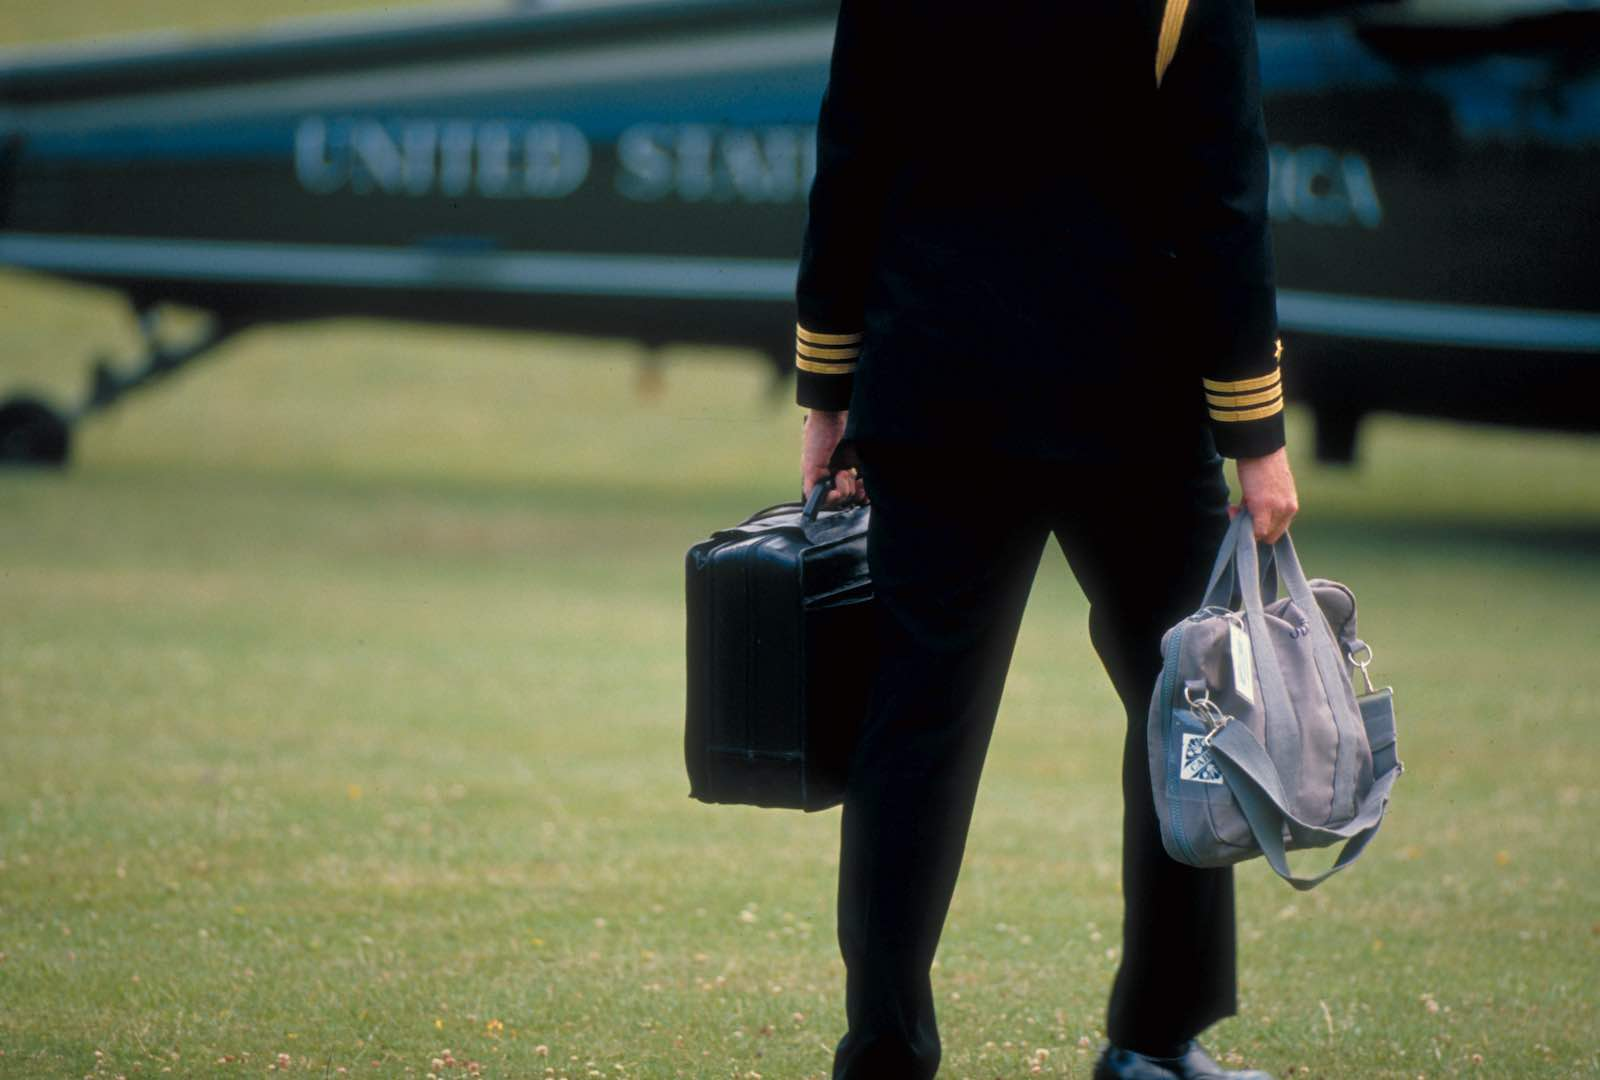 The Football, the briefcase containing nuclear missile launch codes that travels with the US President (Diana Walker/Life via Getty Images)